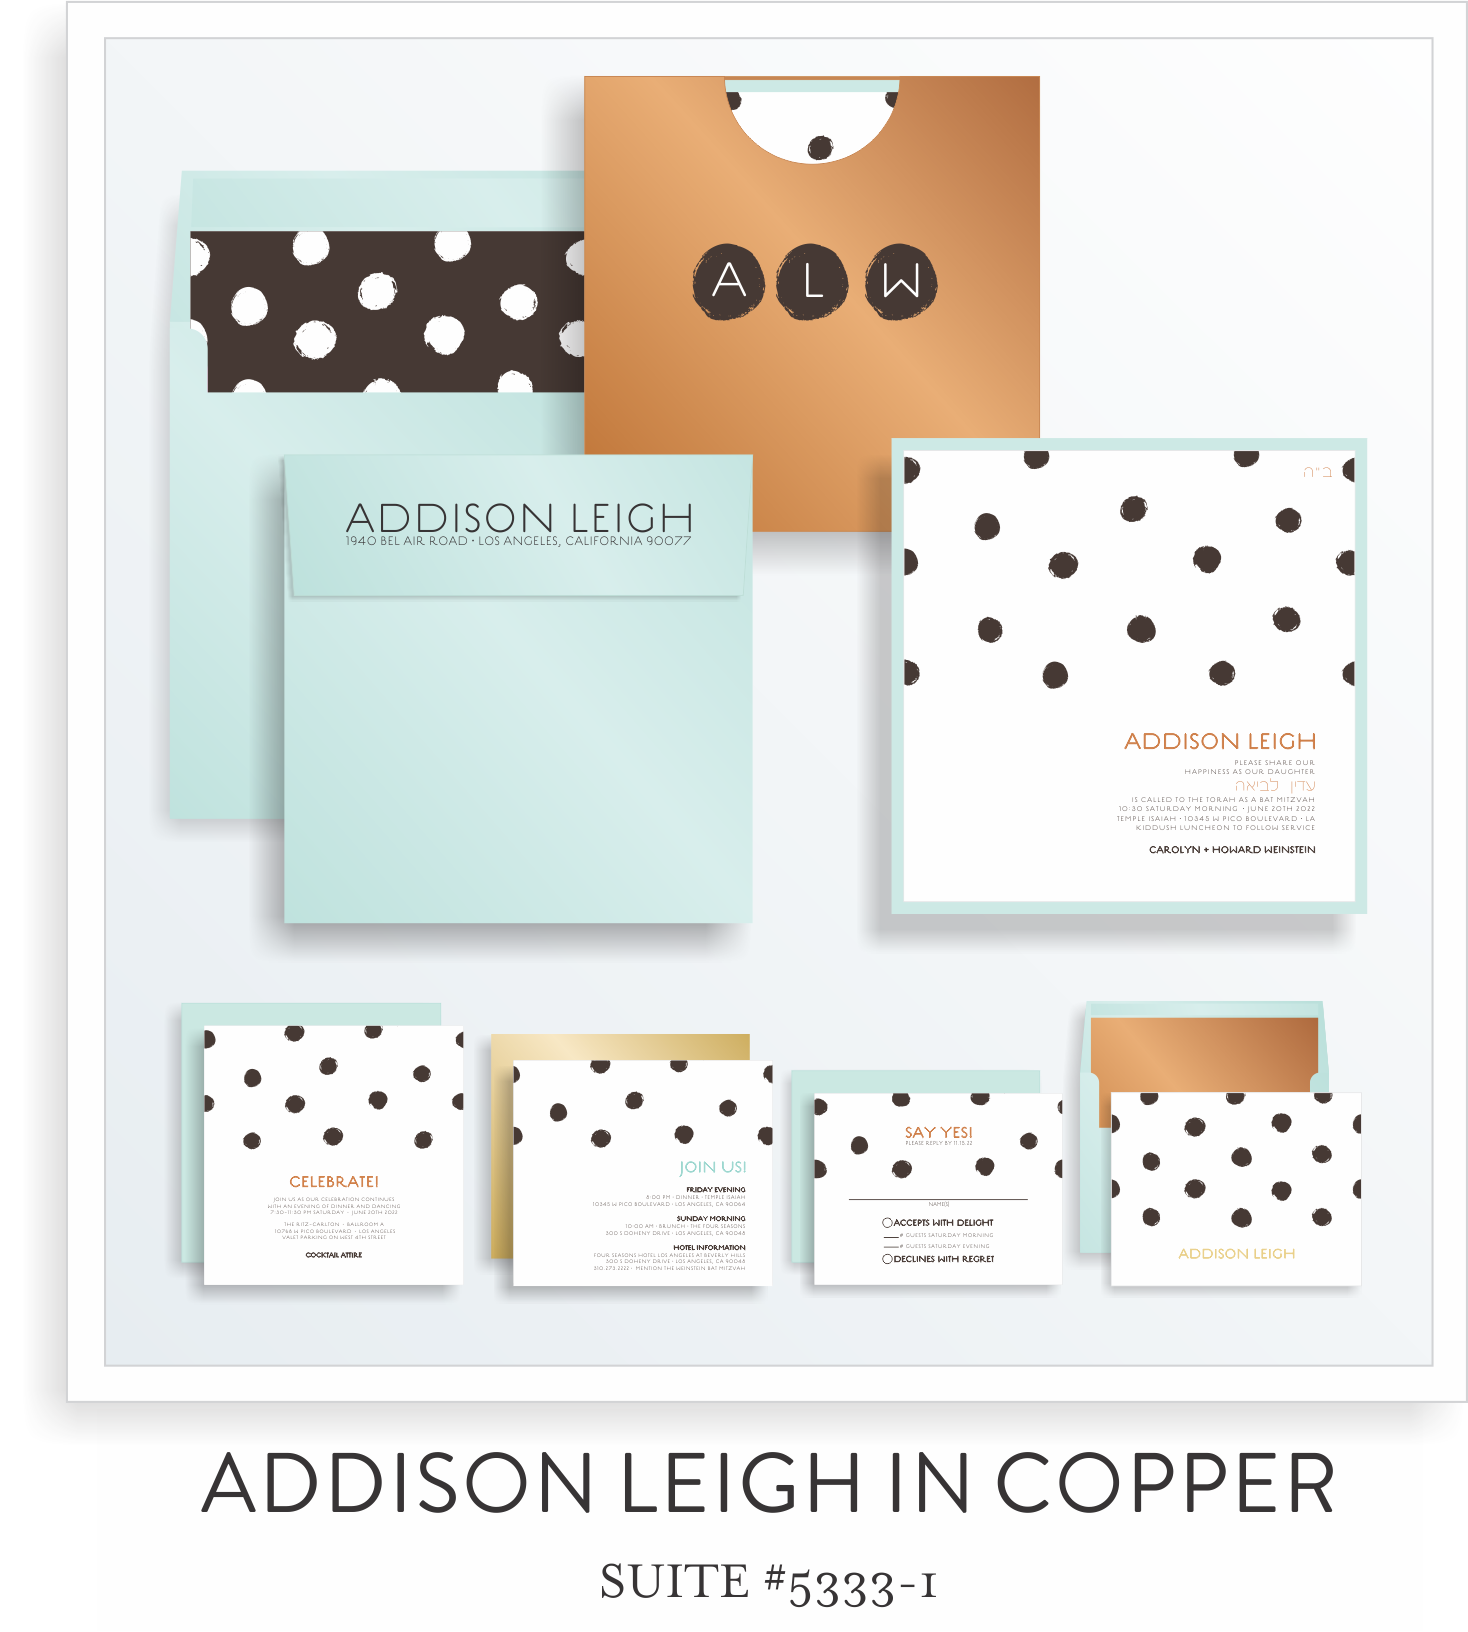 5333-1 ADDISON LEIGH IN COPPER SUITE THUMB.png